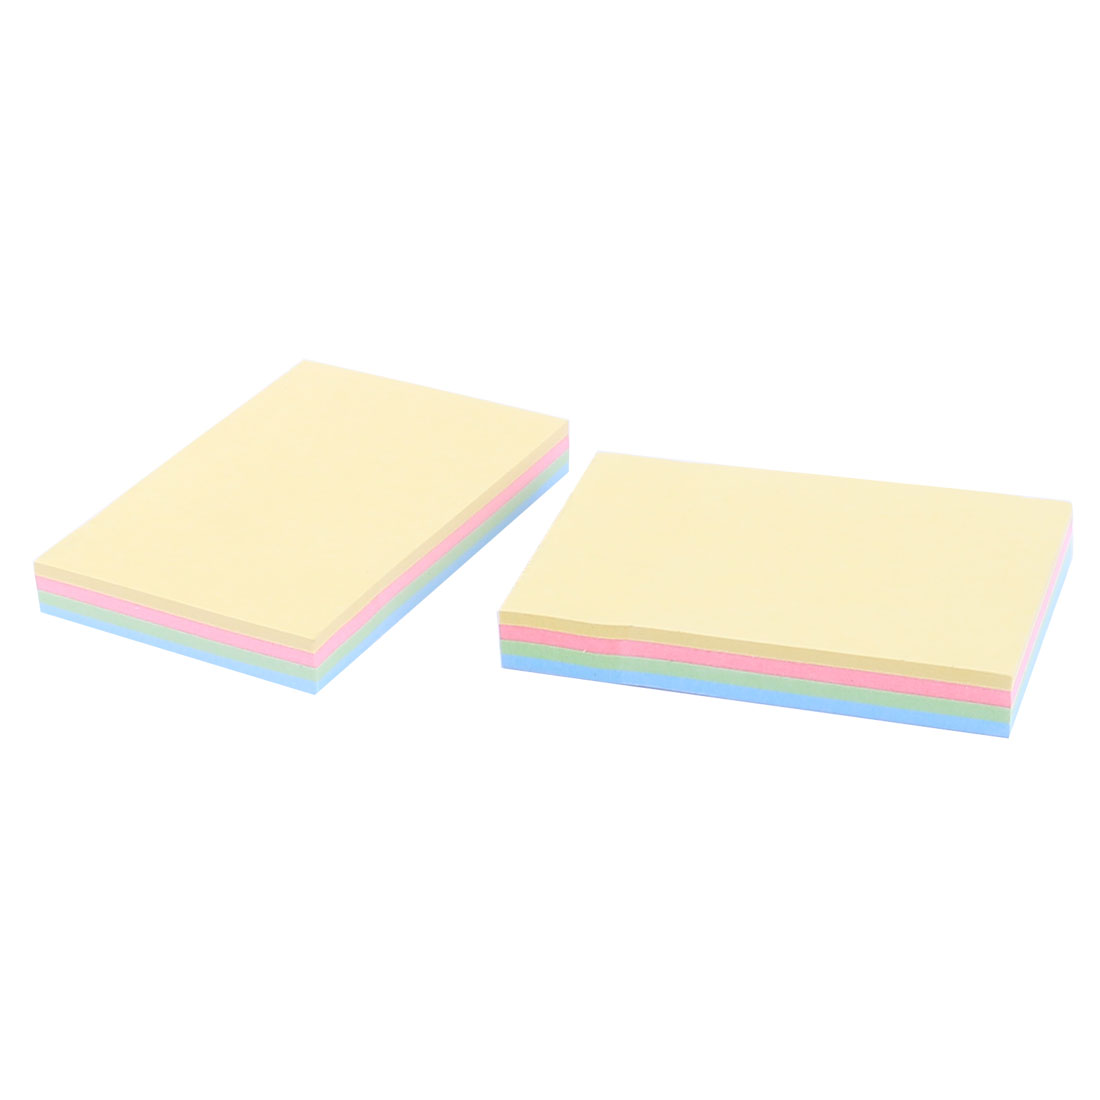 Paper Reusable Adhesive Bookmark Memo Sticky Note 51 x 76mm 200 Sheets